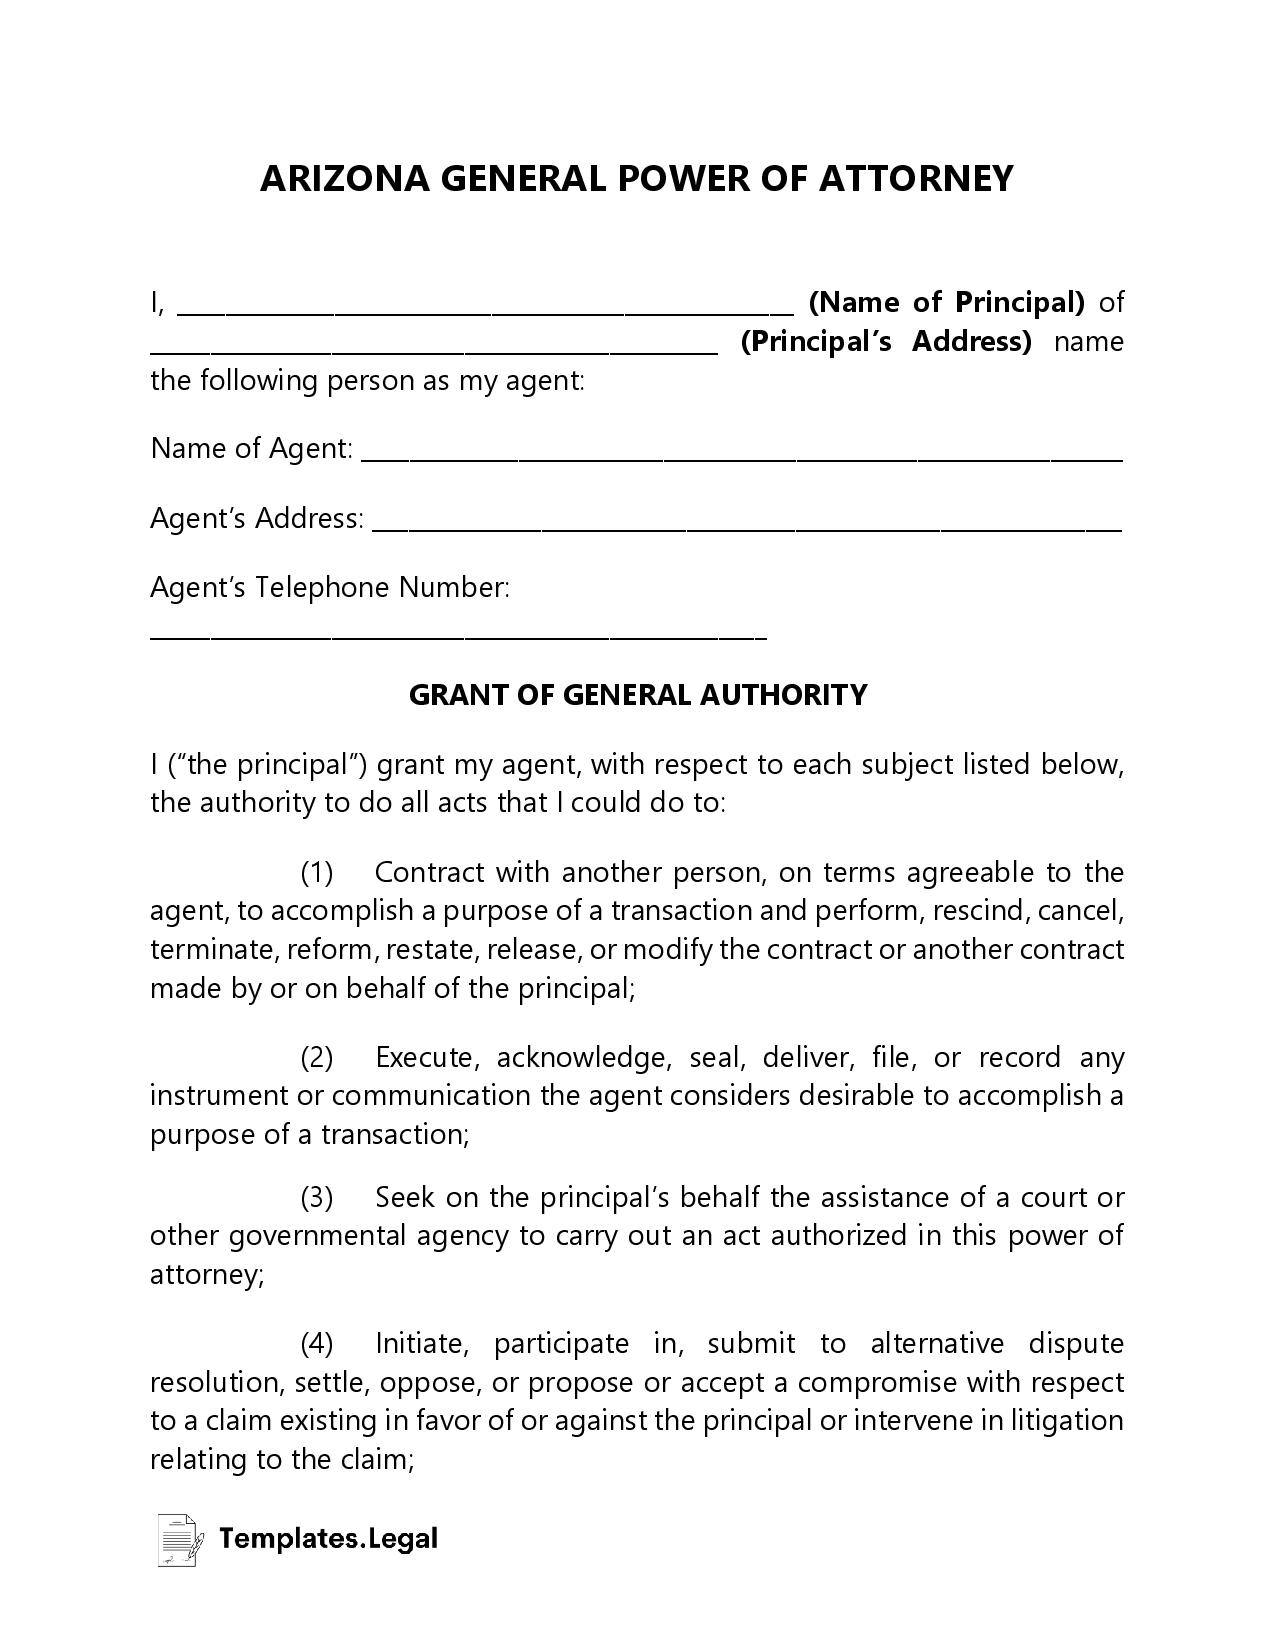 Arizona General Power of Attorney - Templates.Legal